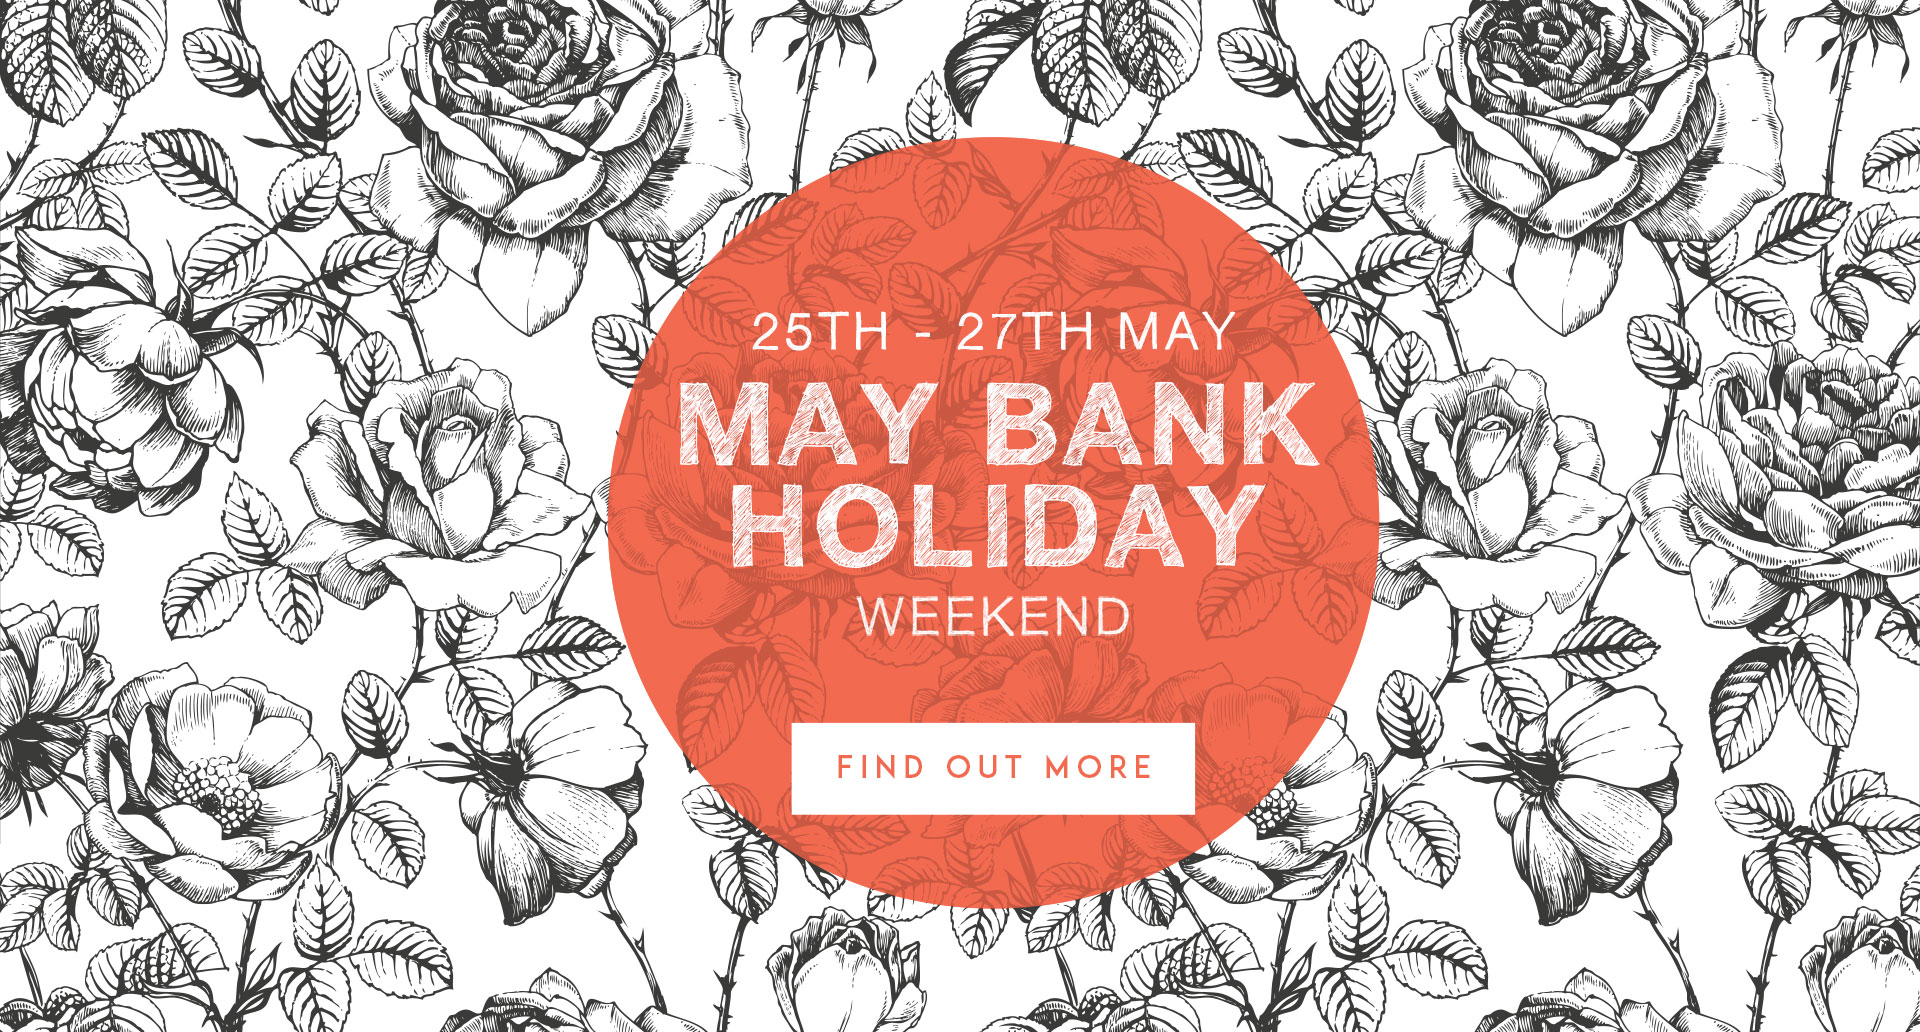 May Bank Holiday at The Woodstock Arms